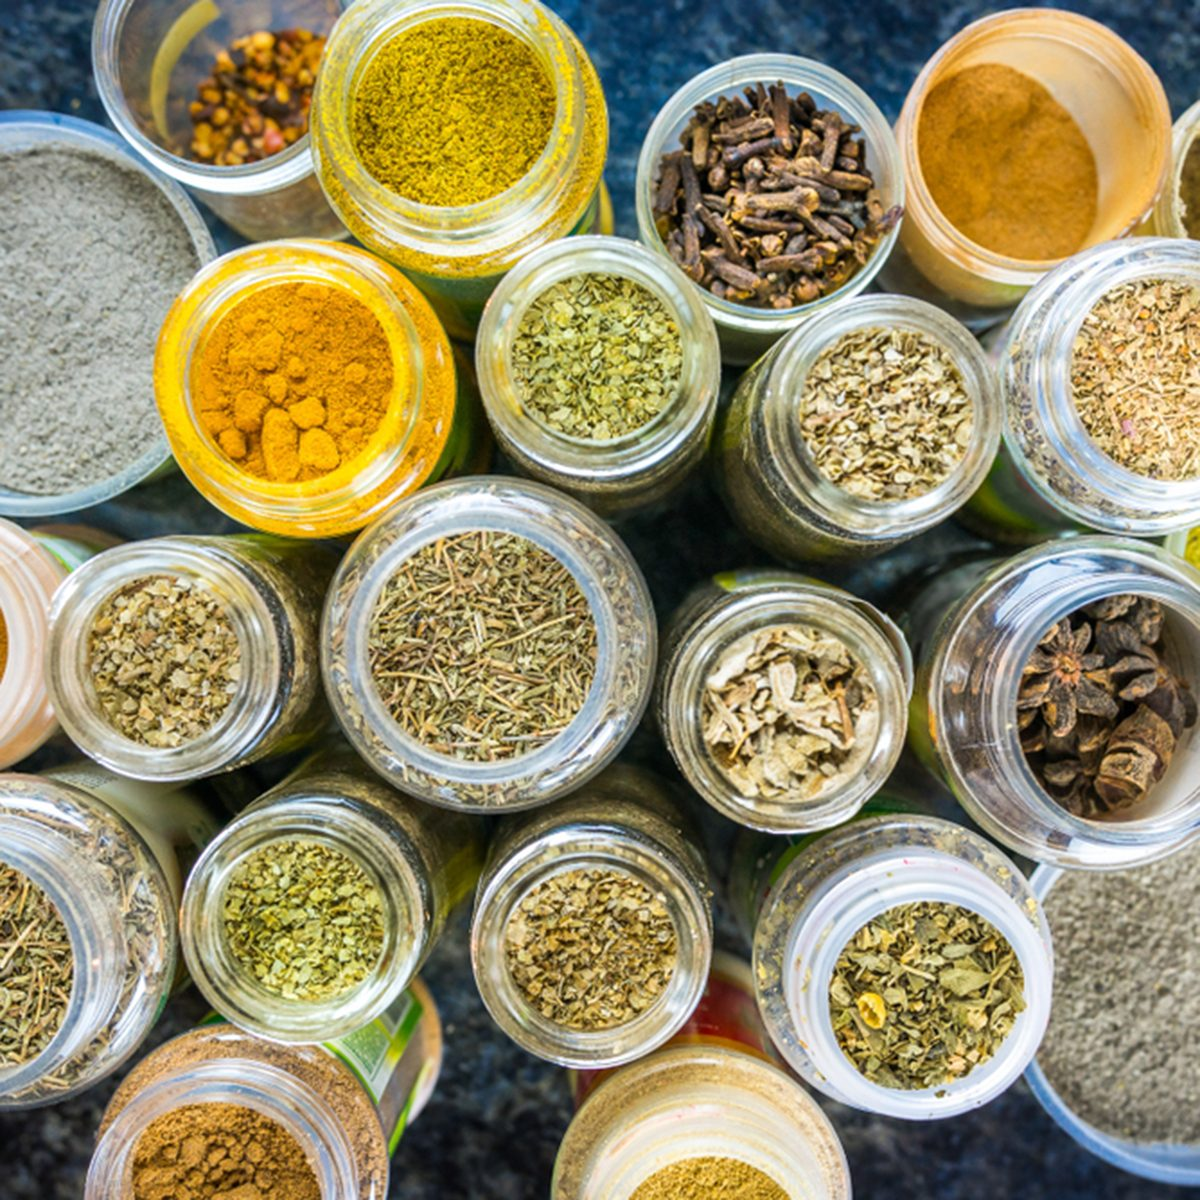 Variety of colorful, different, opened spice jars, from above.